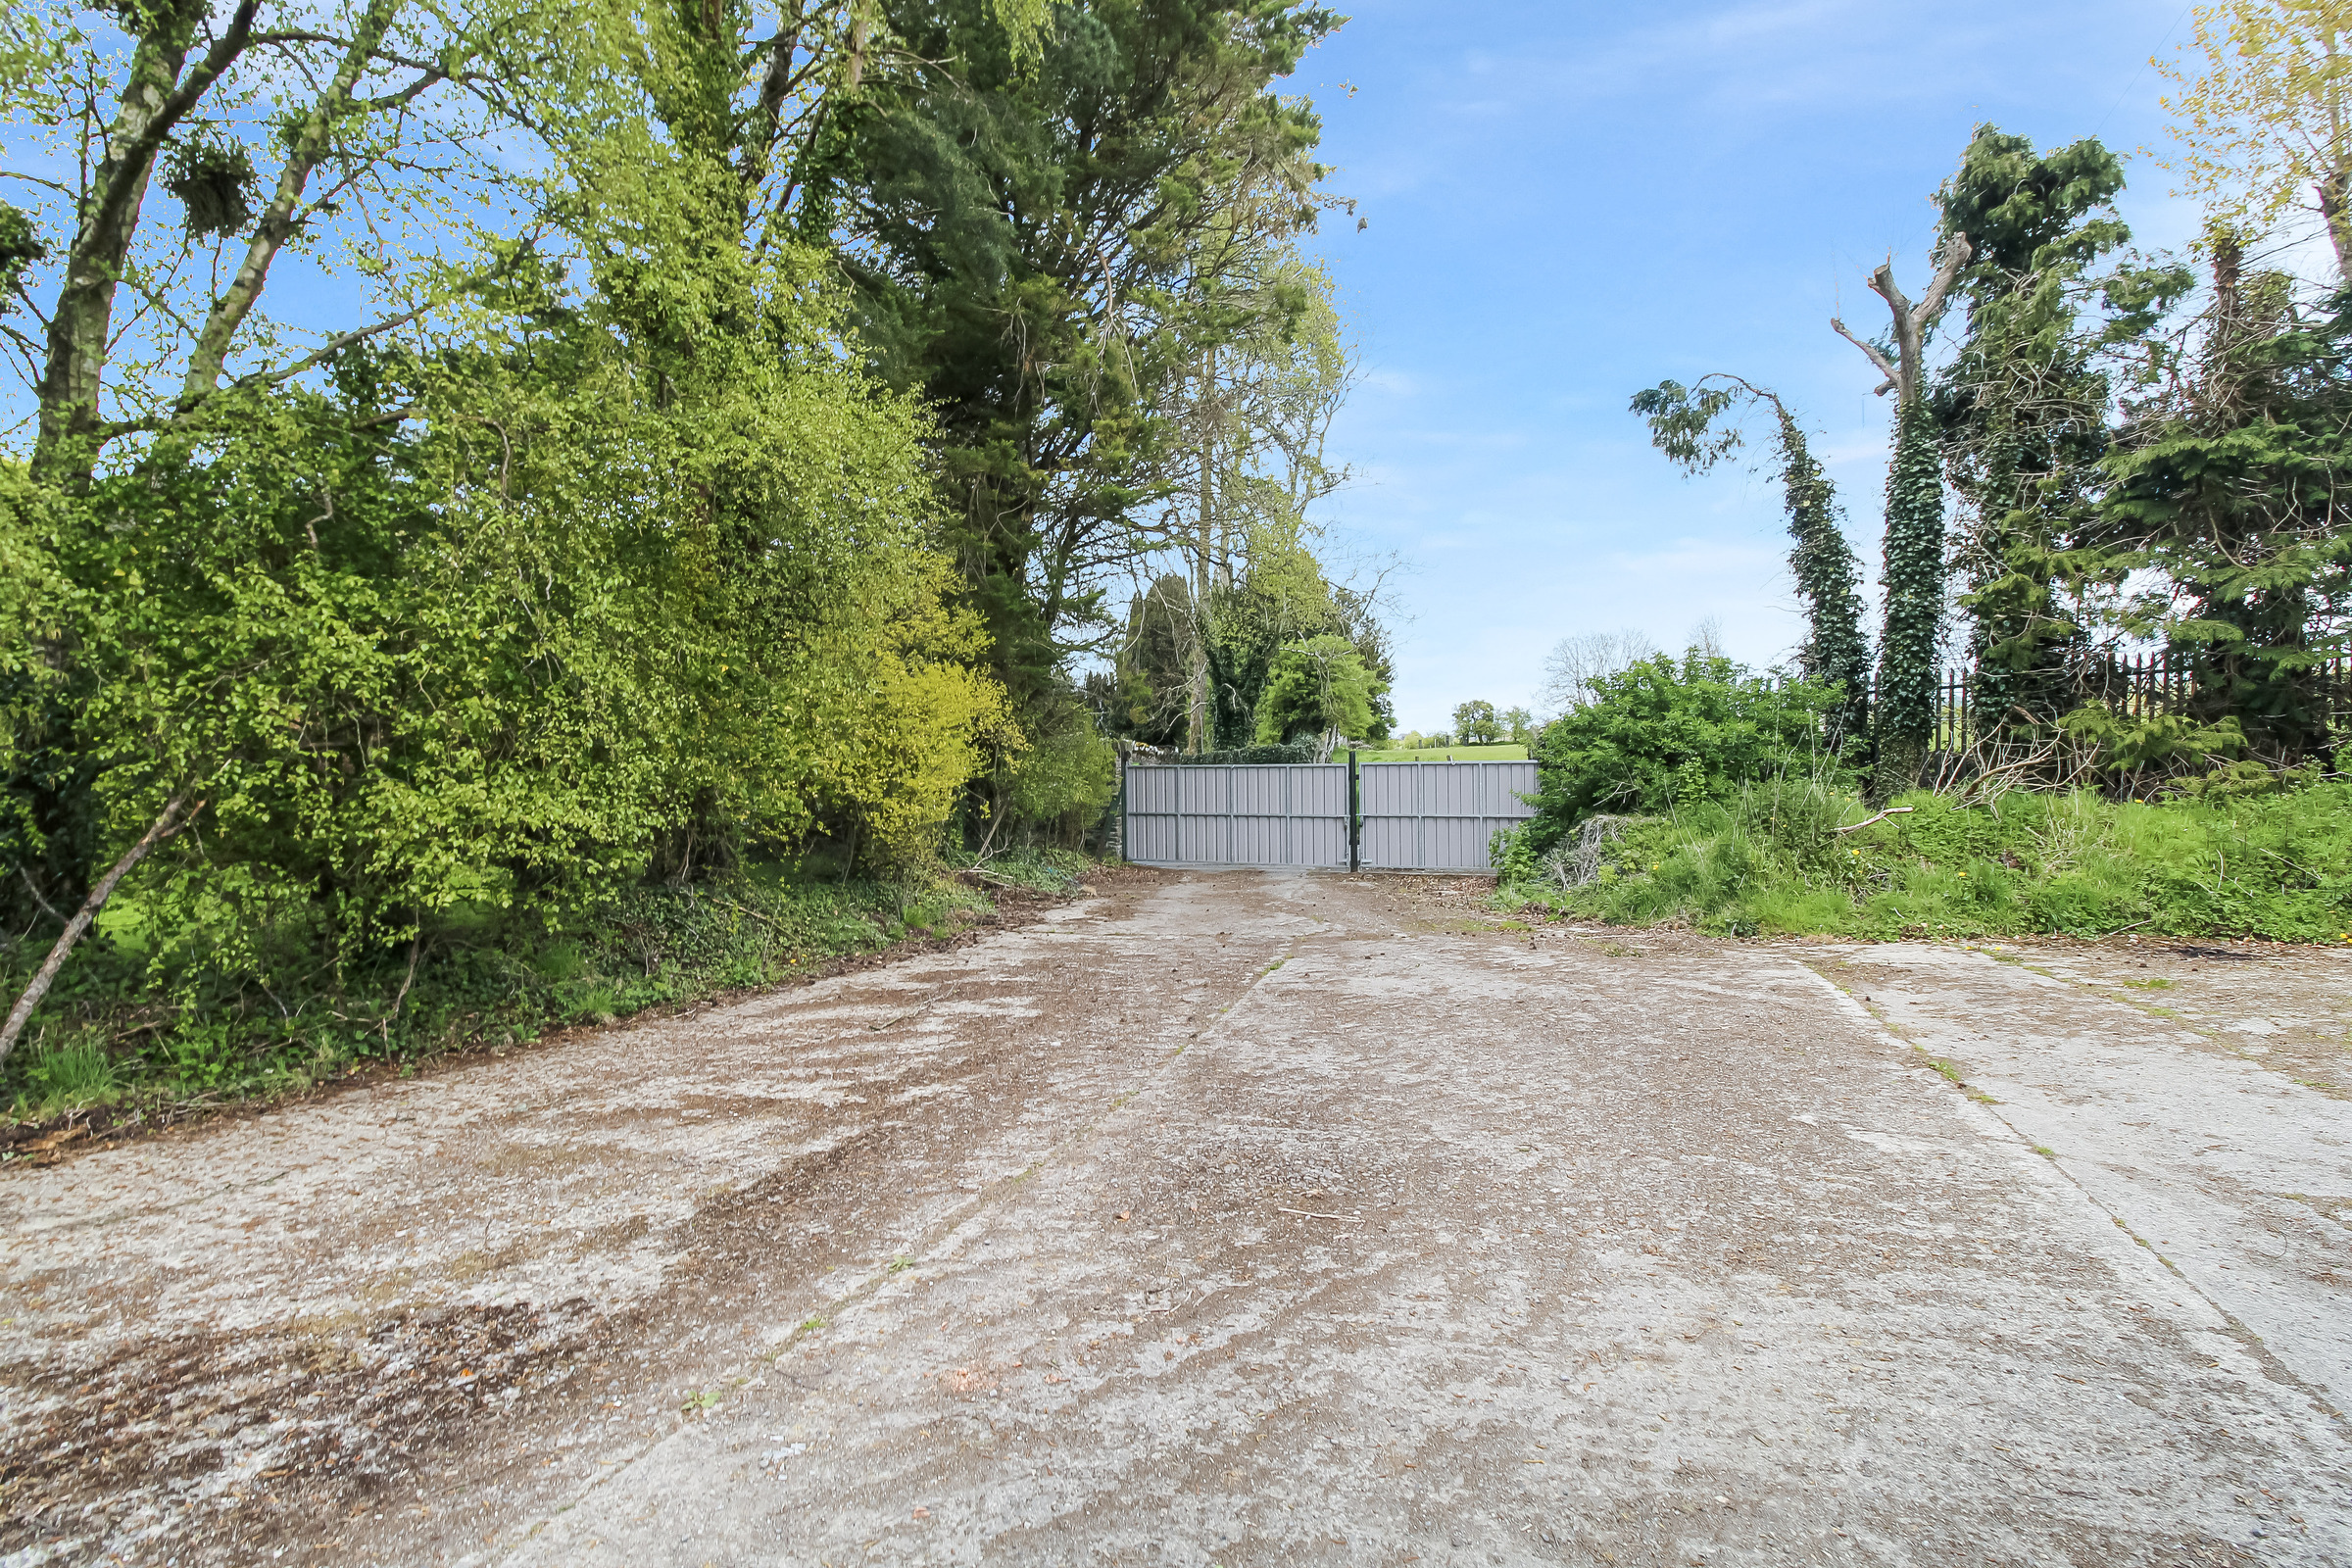 Springhills, Yard & Residence on c.18.5 Acres, Ballymore Eustace, Co. Kildare